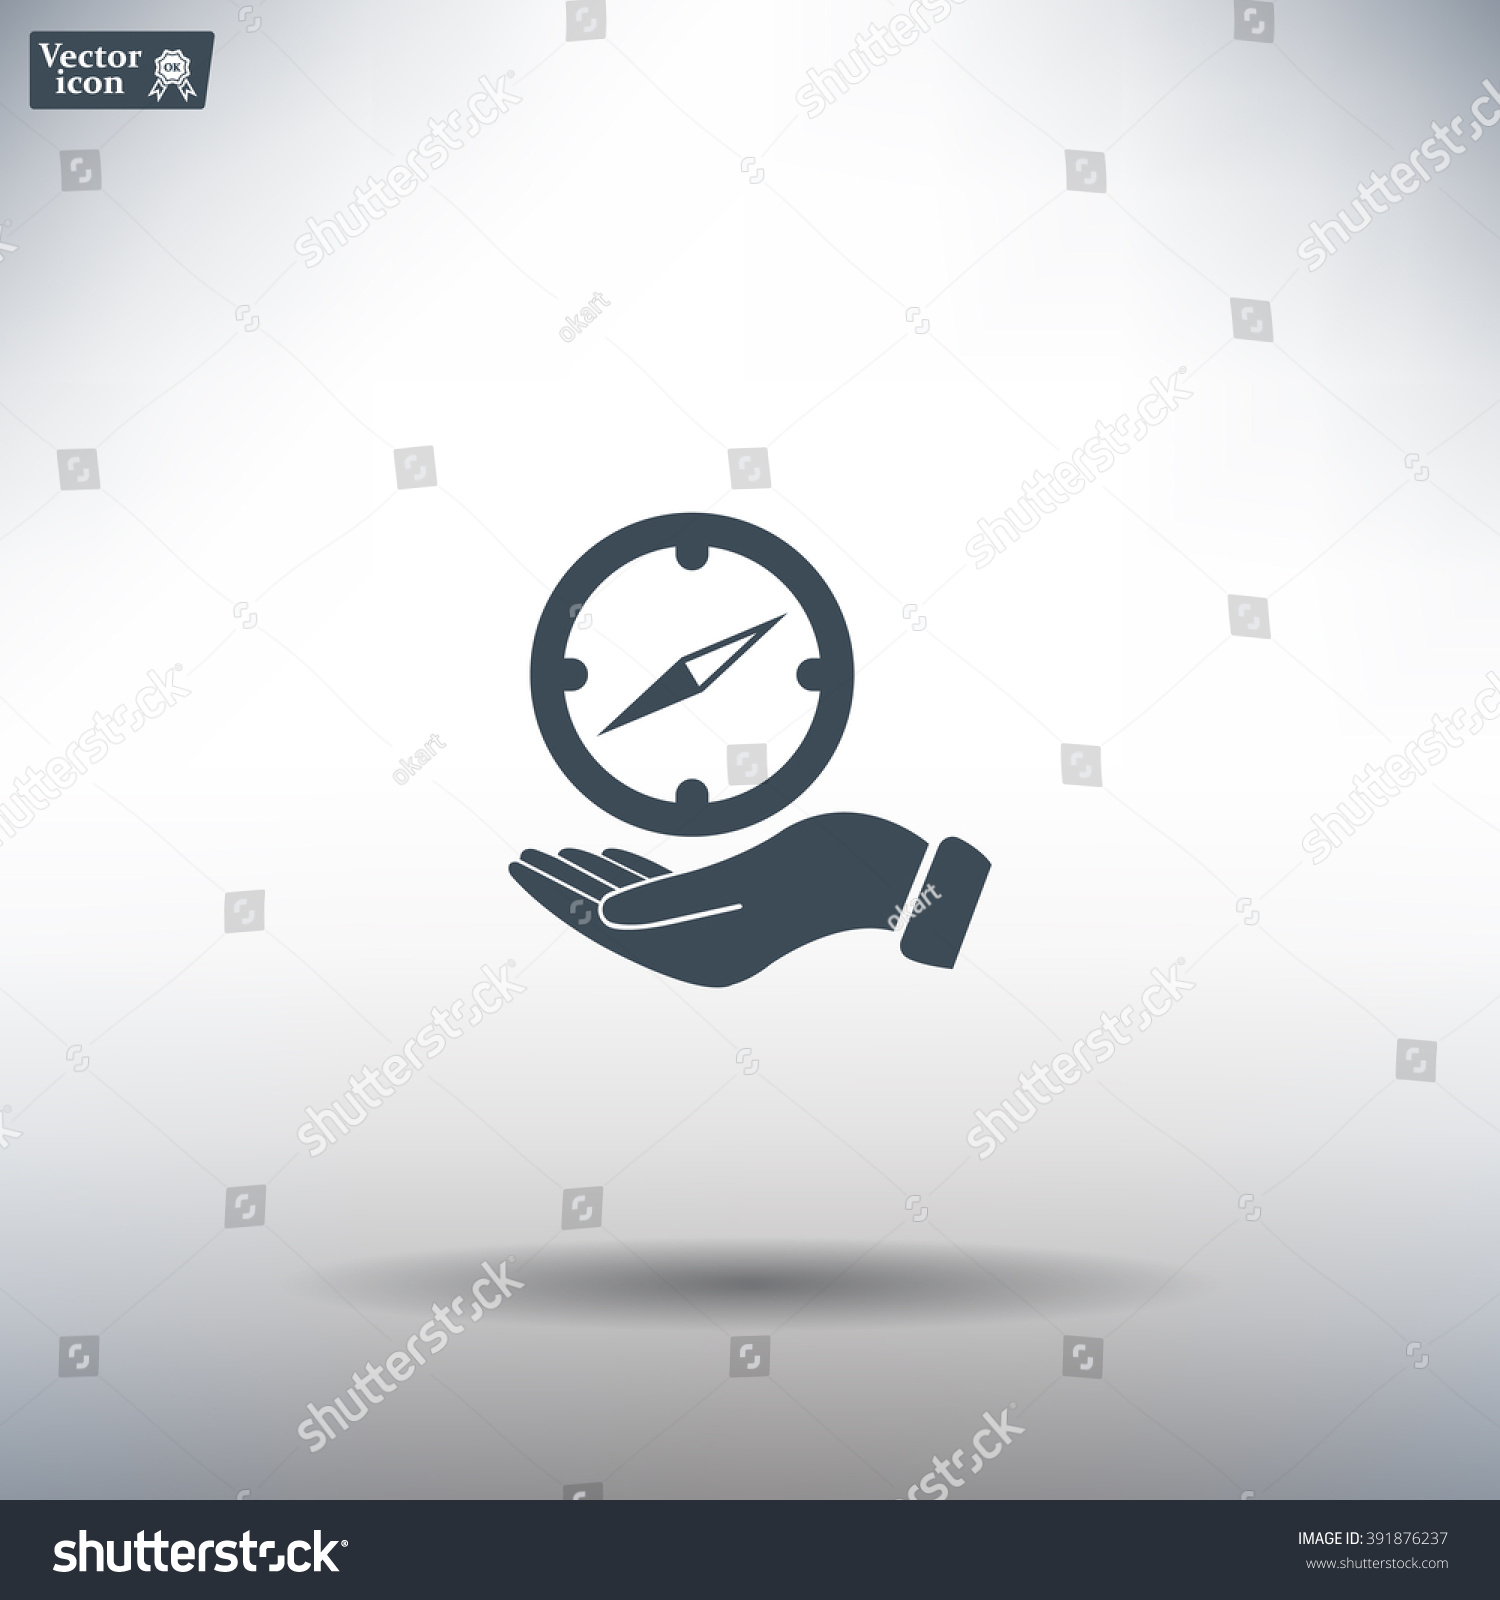 Compass on hand flat icon Vector illustration EPS